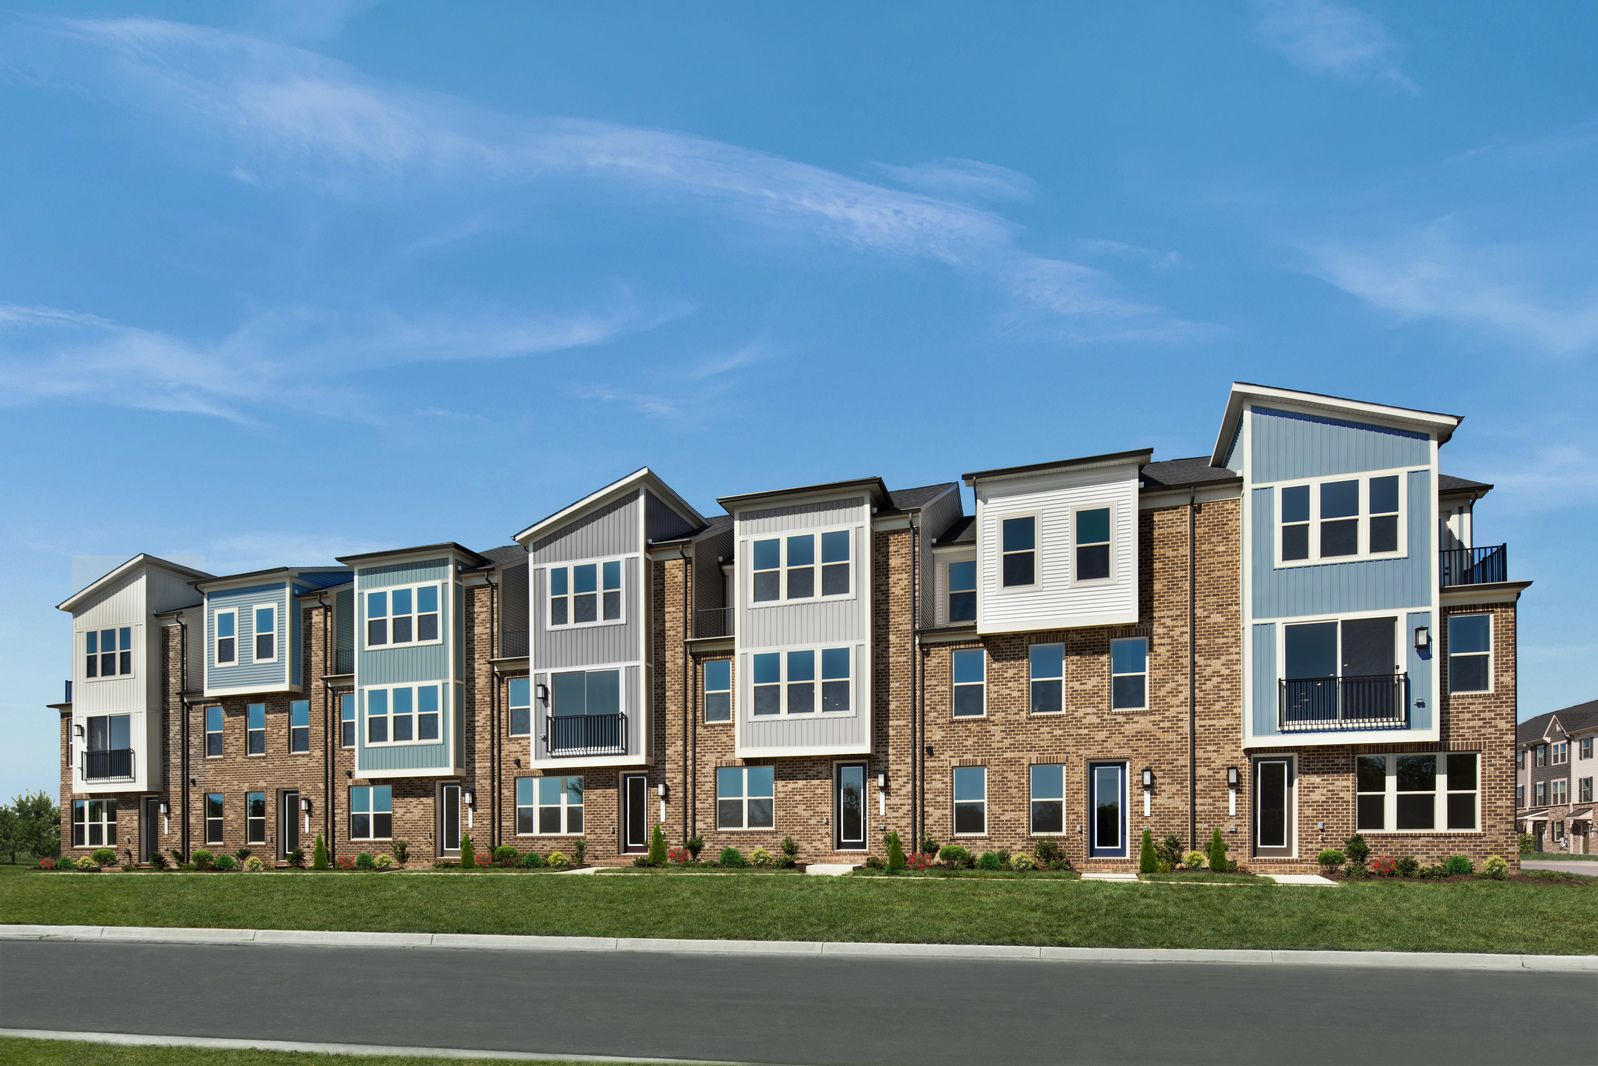 Sophisticated Townhomes in Sought-After Laurel:Introducing a private enclave of luxurious new townhomes in a pristine Laurel location, surrounded by trees and onsite amenities. New homesites are coming soon. Join our VIP list today!